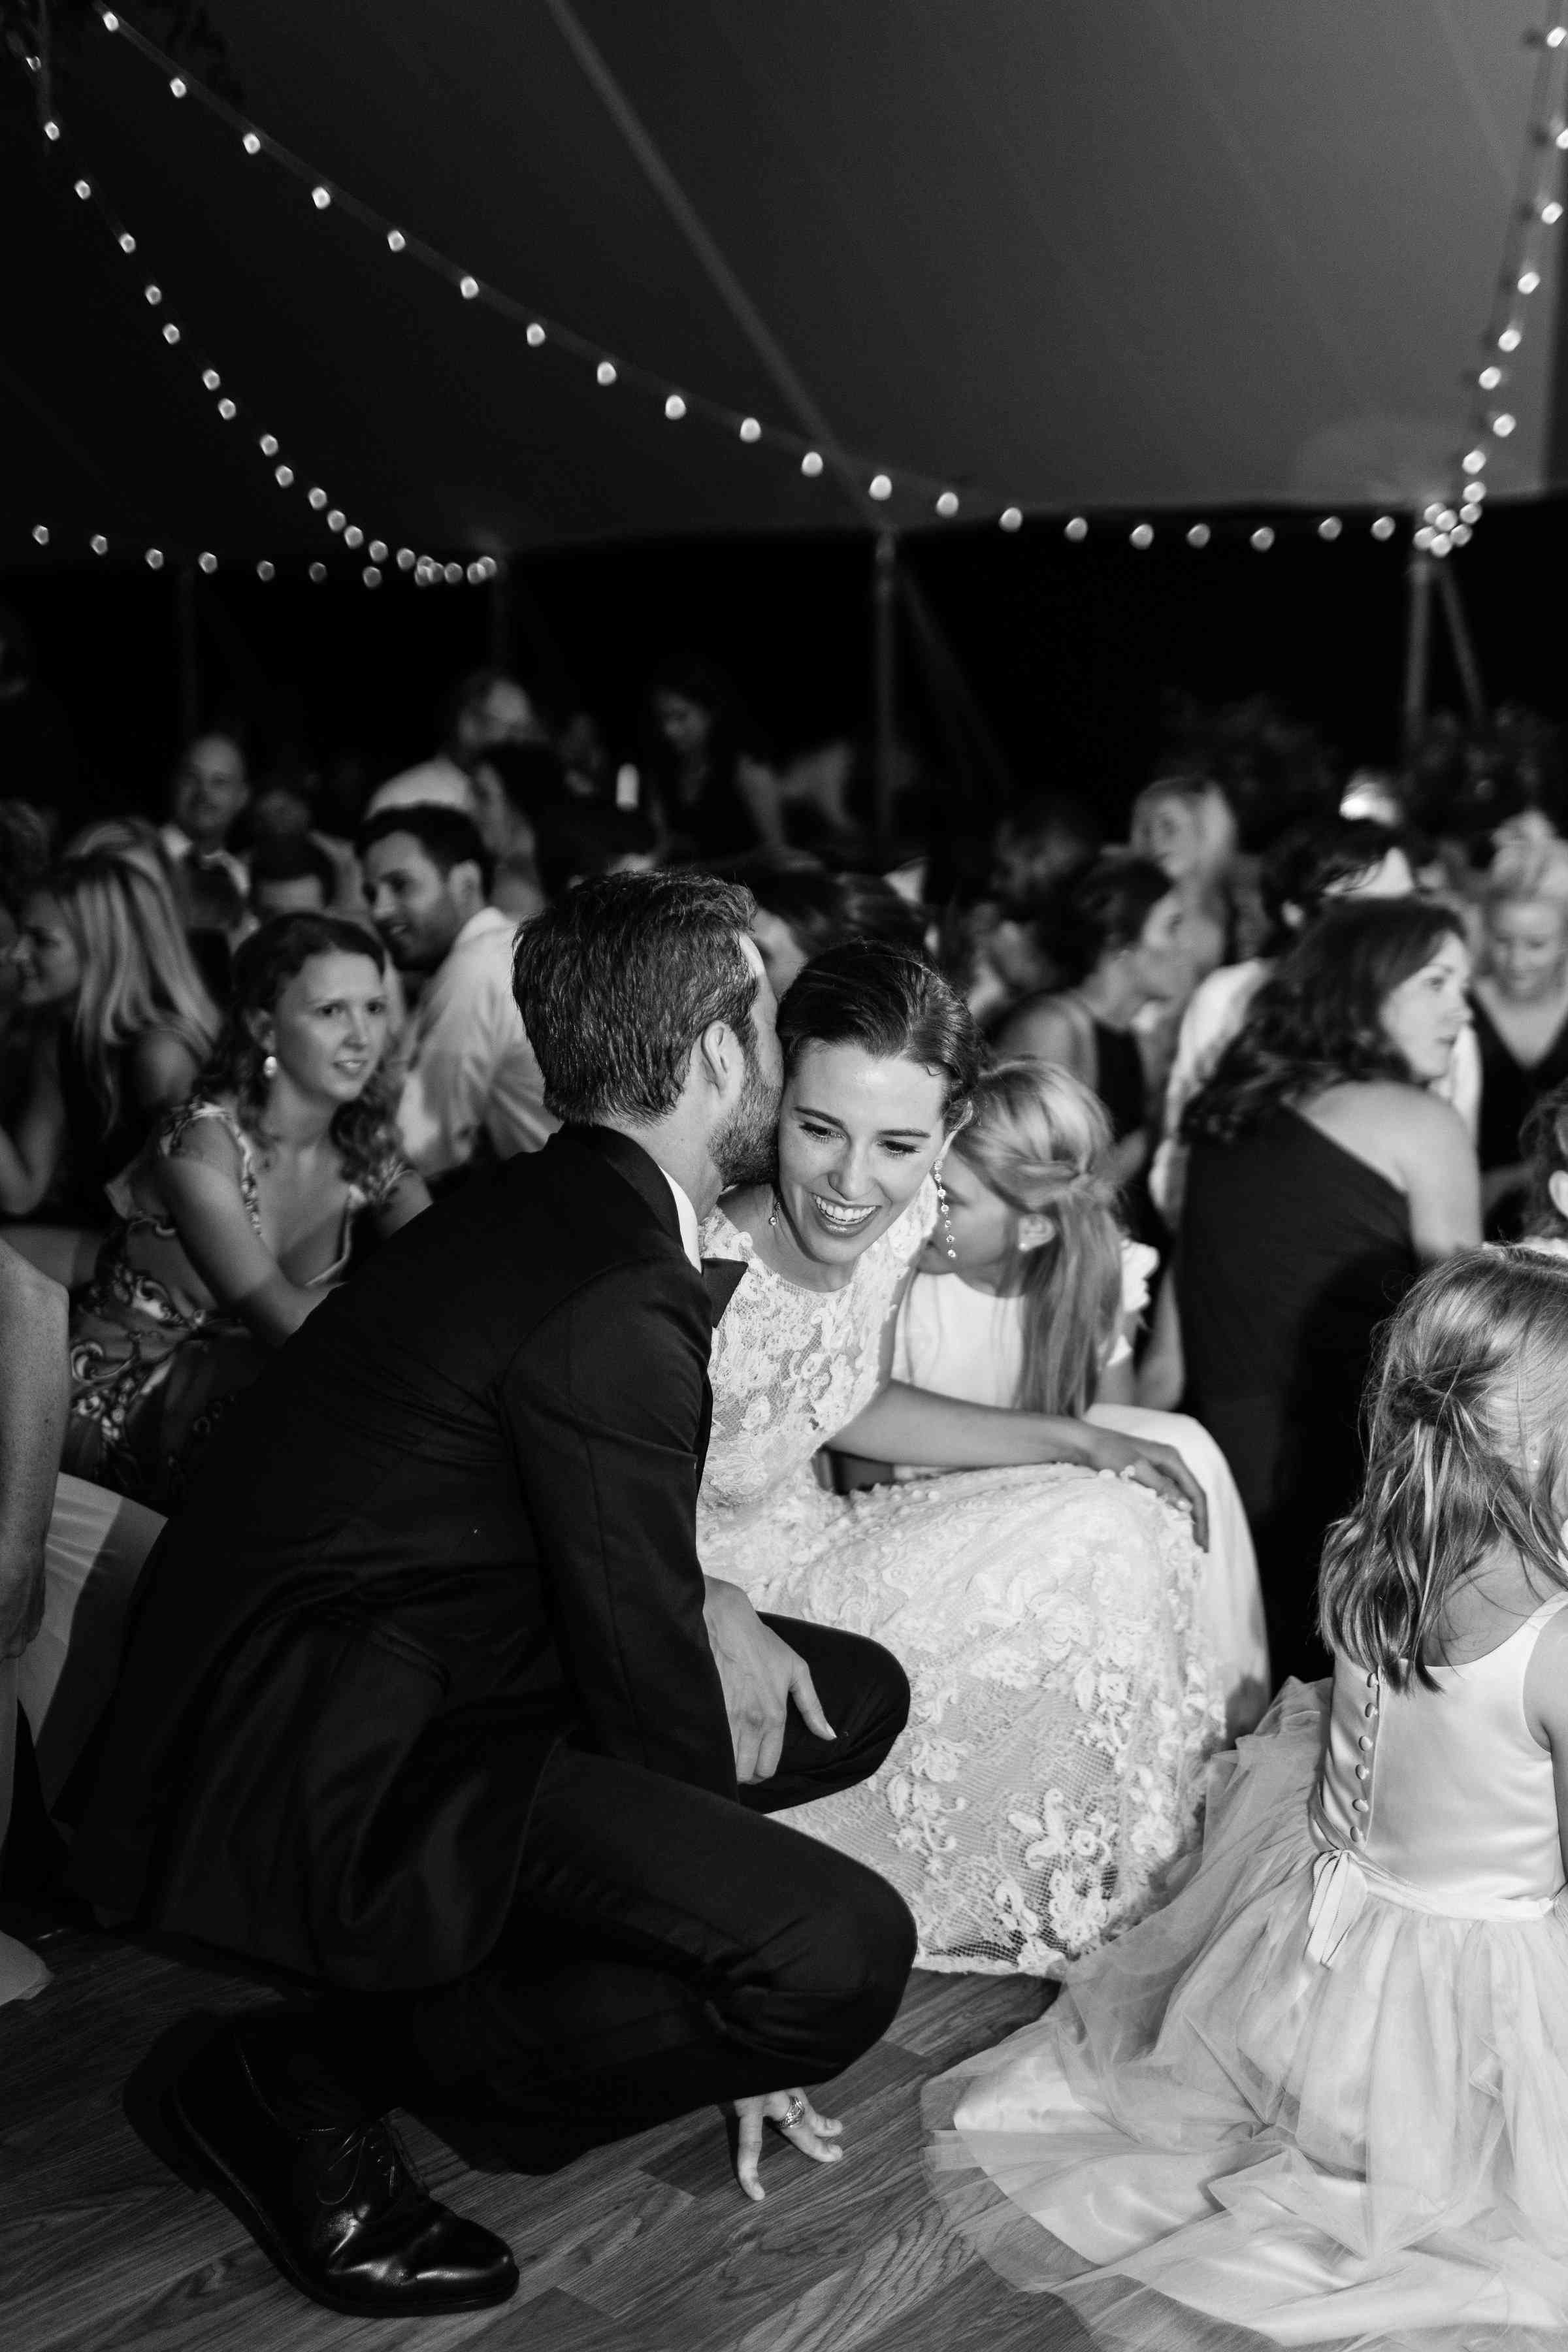 <p>Bride and groom whispering</p><br><br>